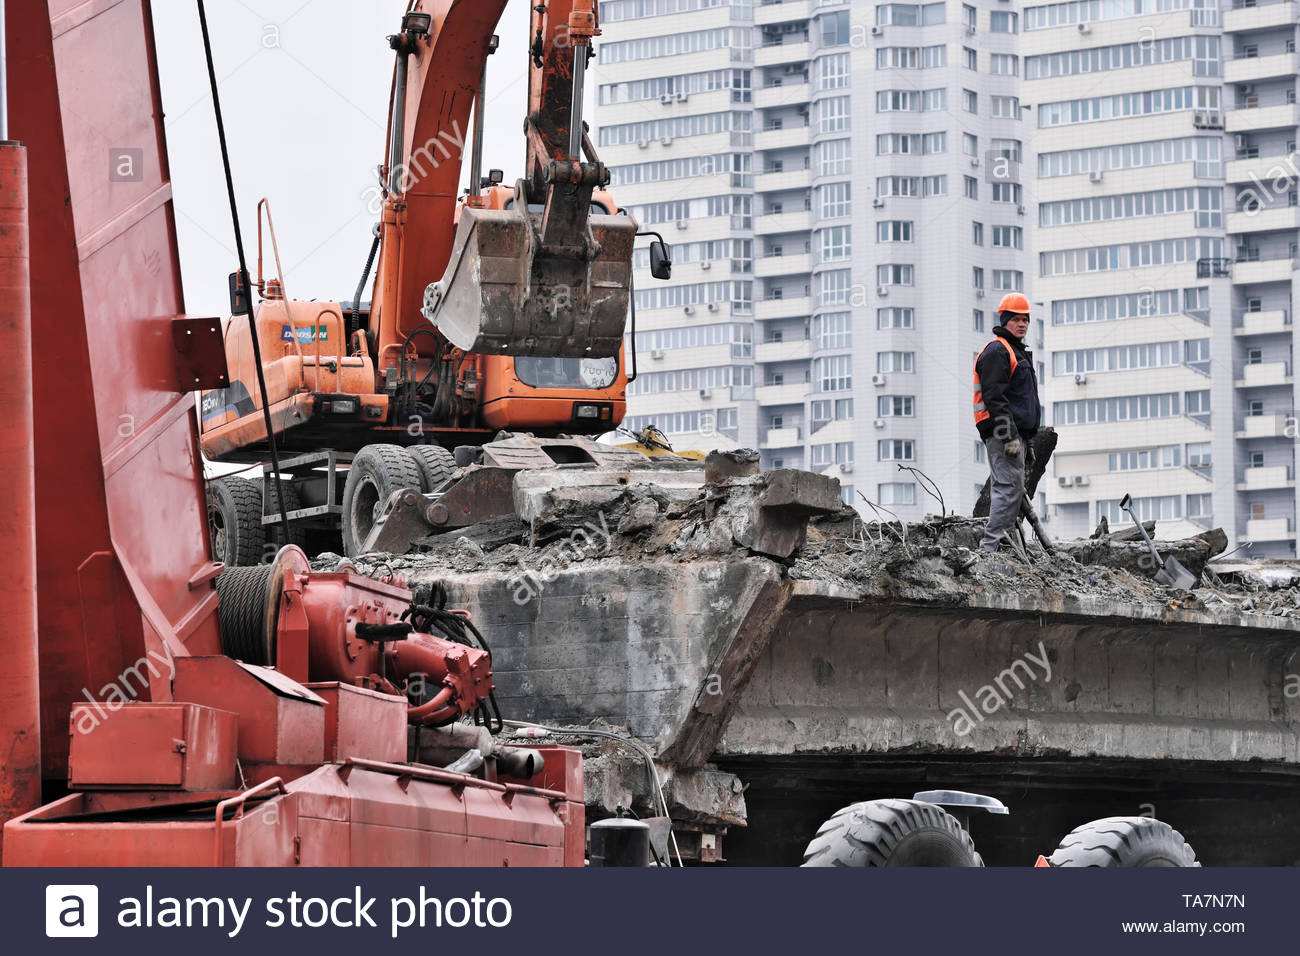 Dismantling of the old emergency Shuliavsky bridge in Kiev, Ukraine on March 21, 2019 dismantling the main supporting structures and removing the pave - Stock Image